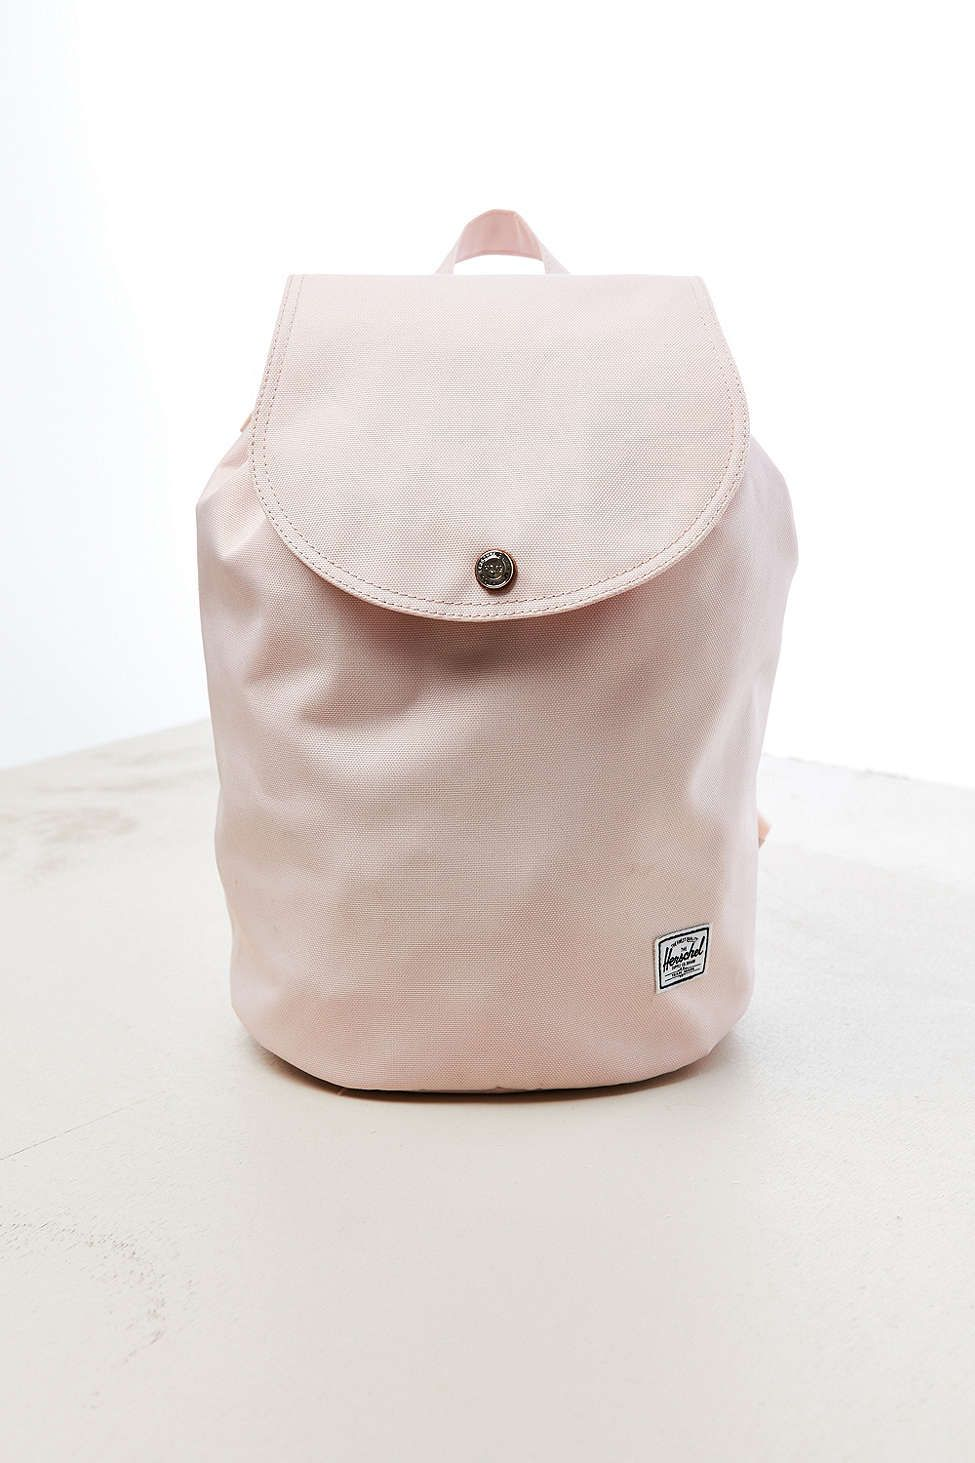 1c2c357d1b8 Shop Herschel Supply Co. Women s Reid Backpack at Urban Outfitters today.  We carry all the latest styles, colors and brands for you to choose from  right ...